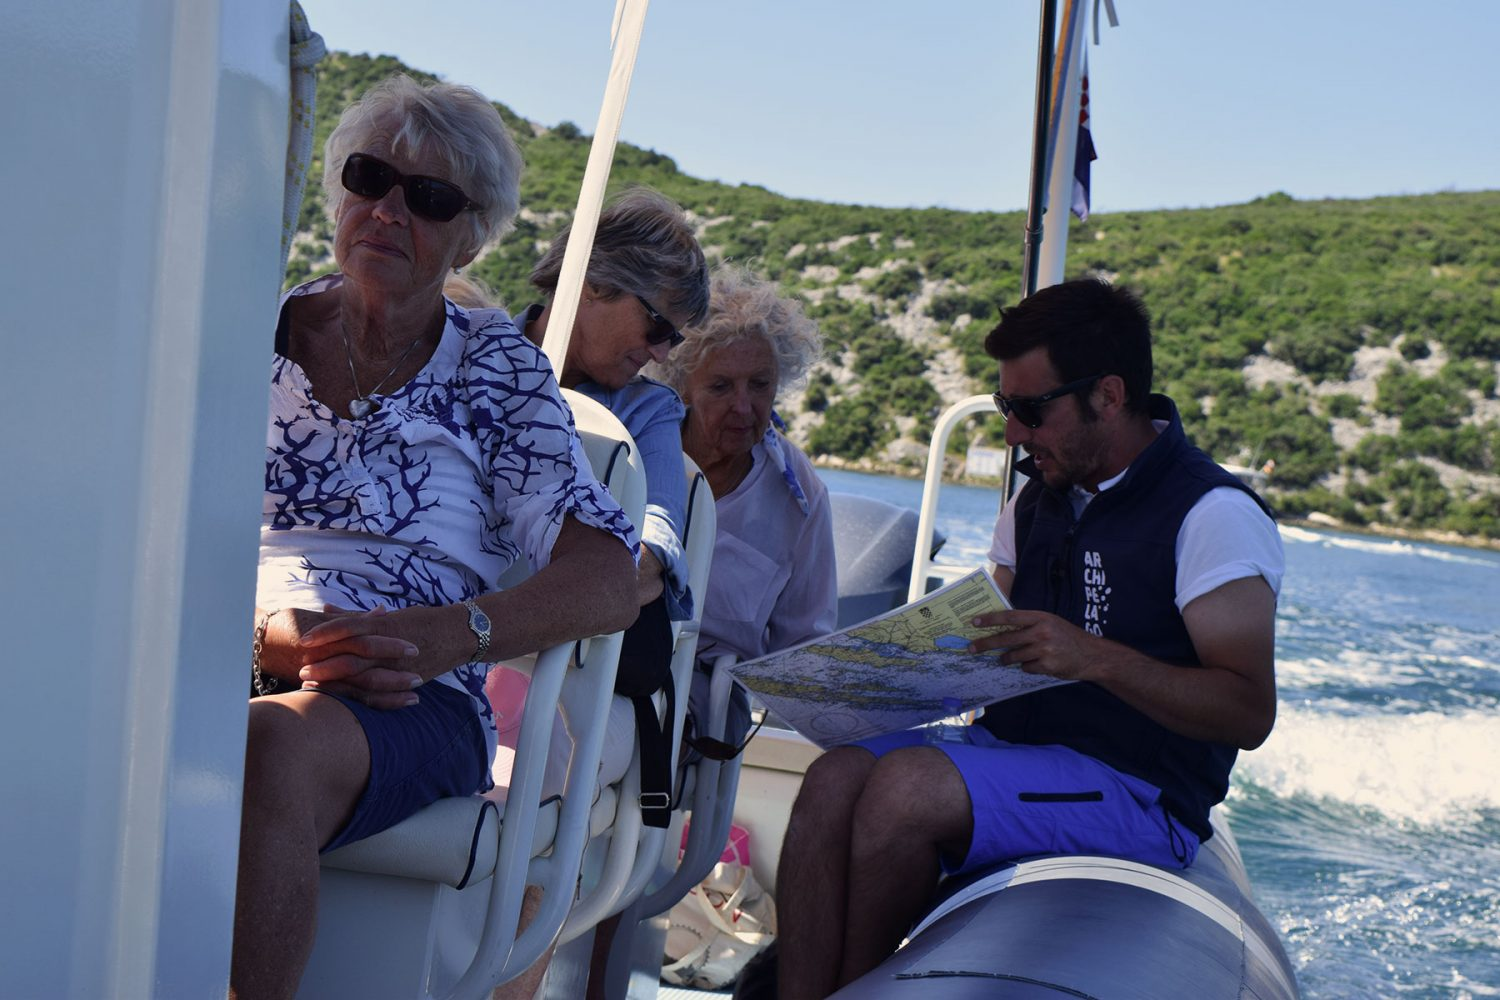 Archipelago Tours Krka Experience Private tour - Krka Experience Private Tour photo of the tour guide conversating with the tourists during a boat tour